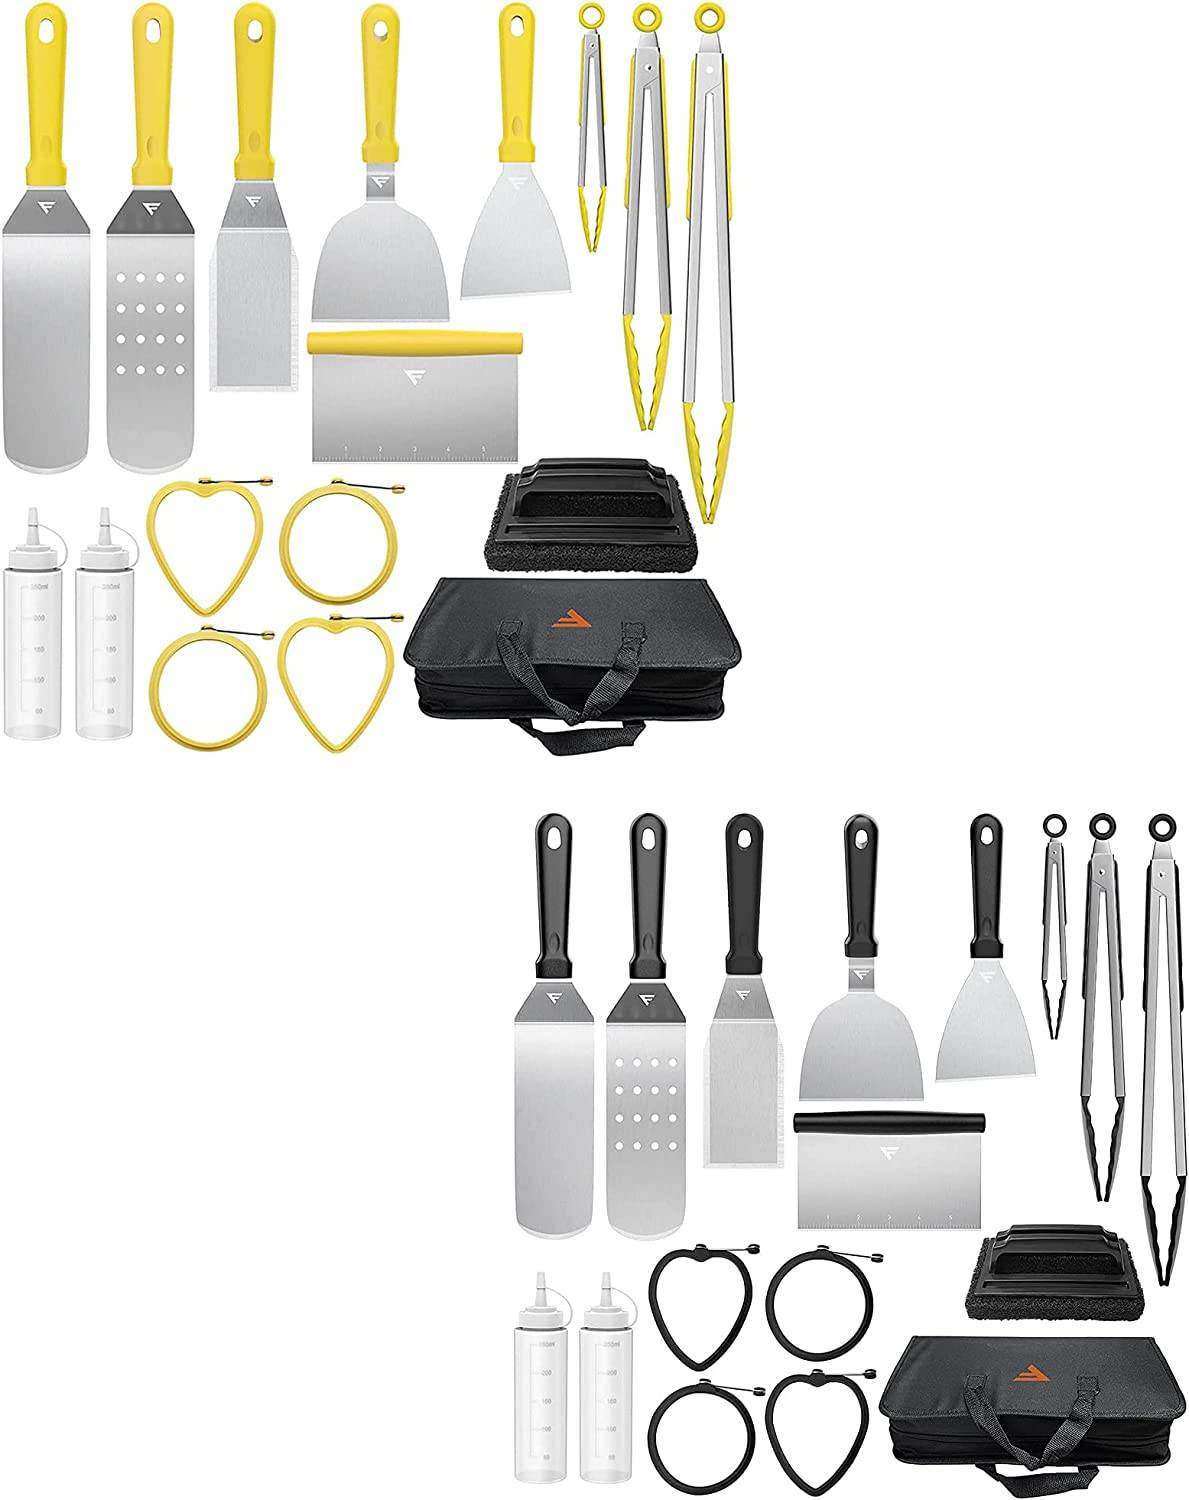 FiveJoy Griddle Accessories Kit New arrival Excellence for Camp BBQ Chef PCS Tools 17